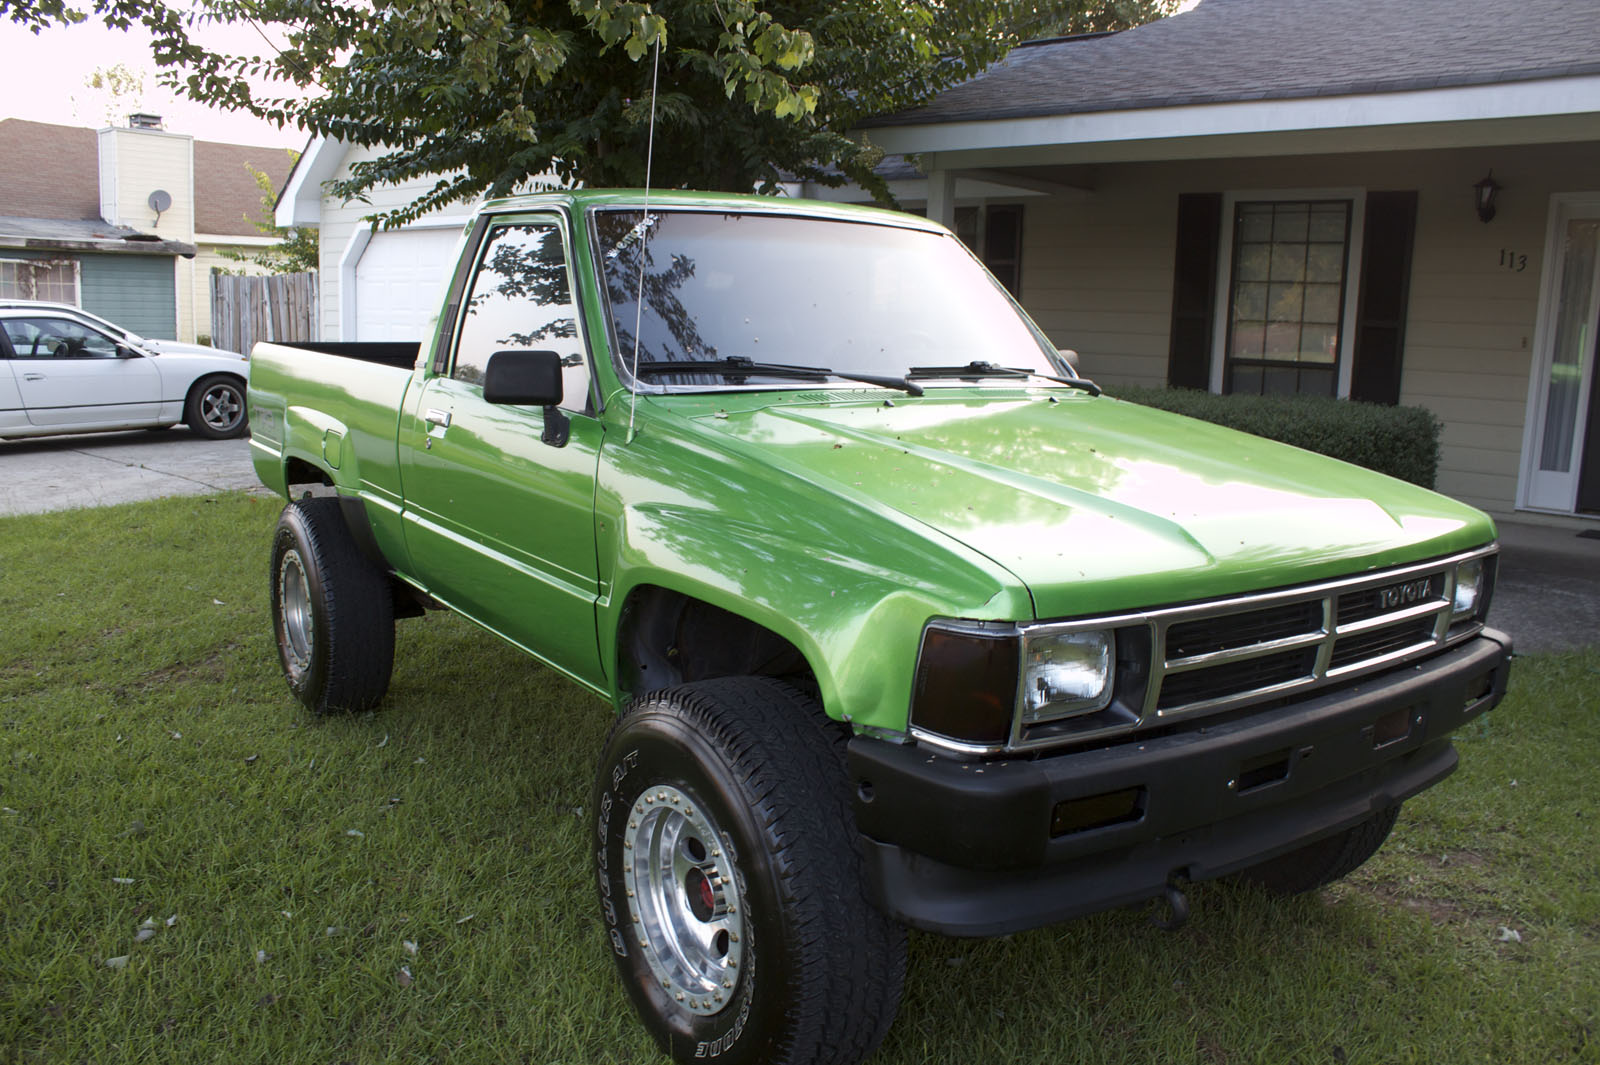 93 toyota pickup for sale 93 toyota pickup for sale     pic2fly